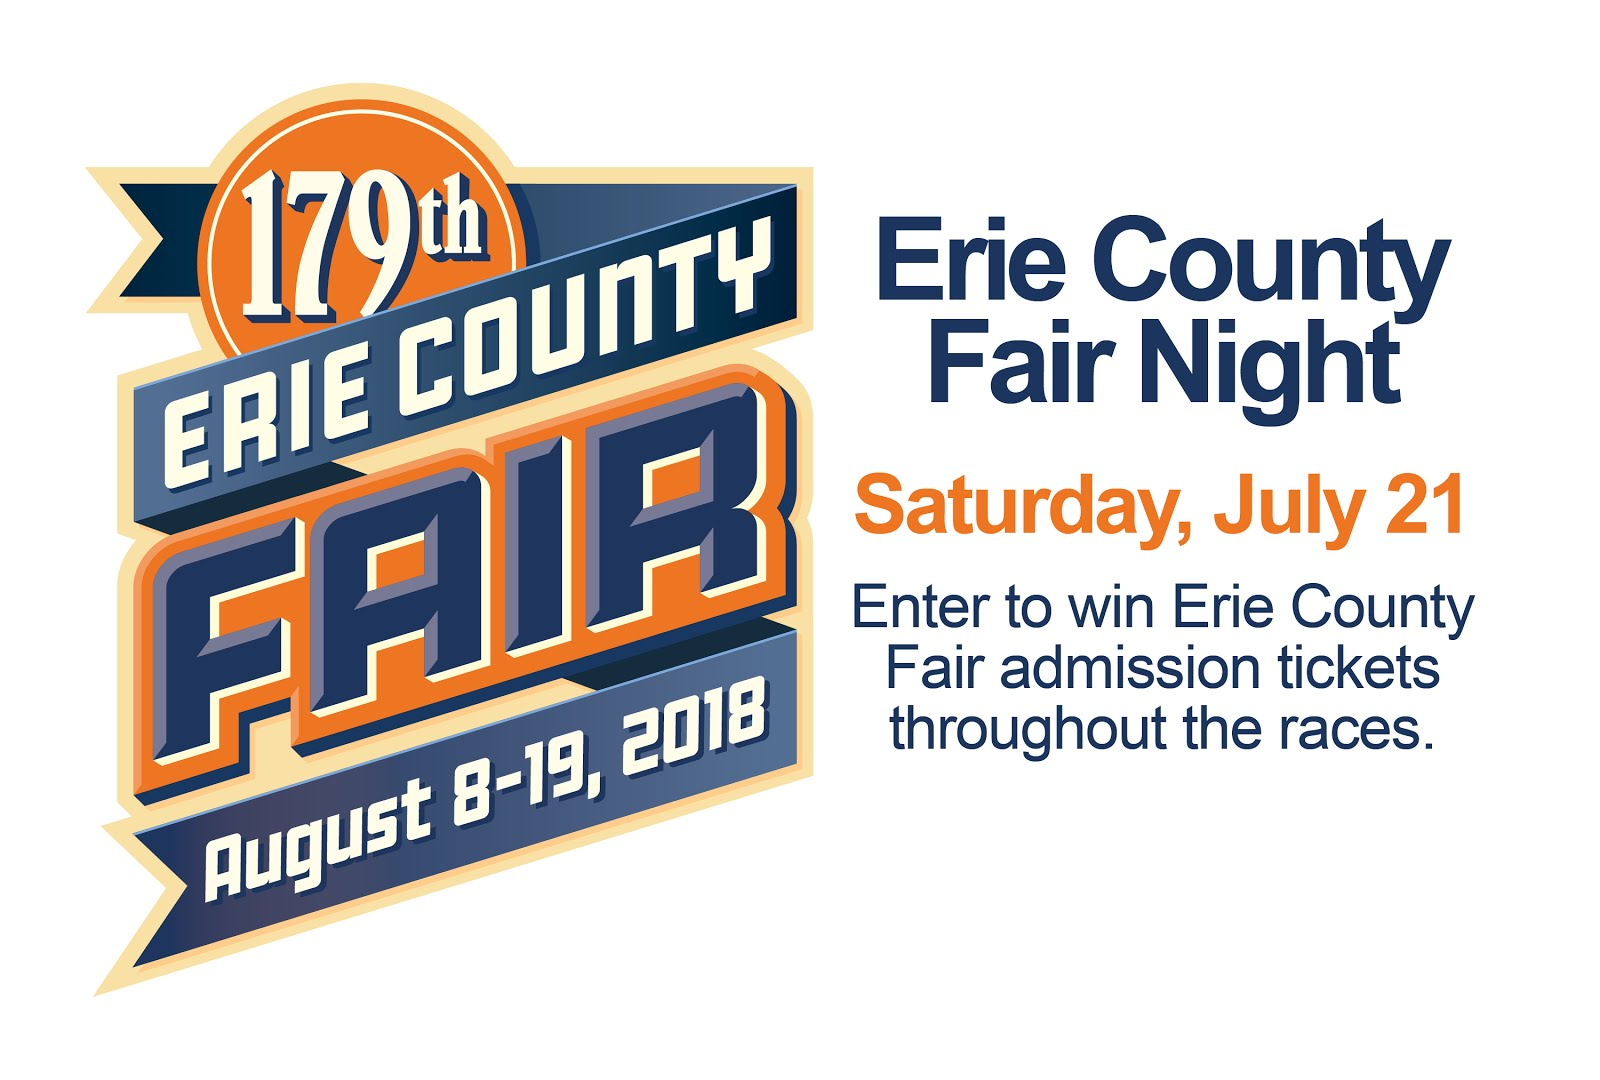 Erie County Fair Night